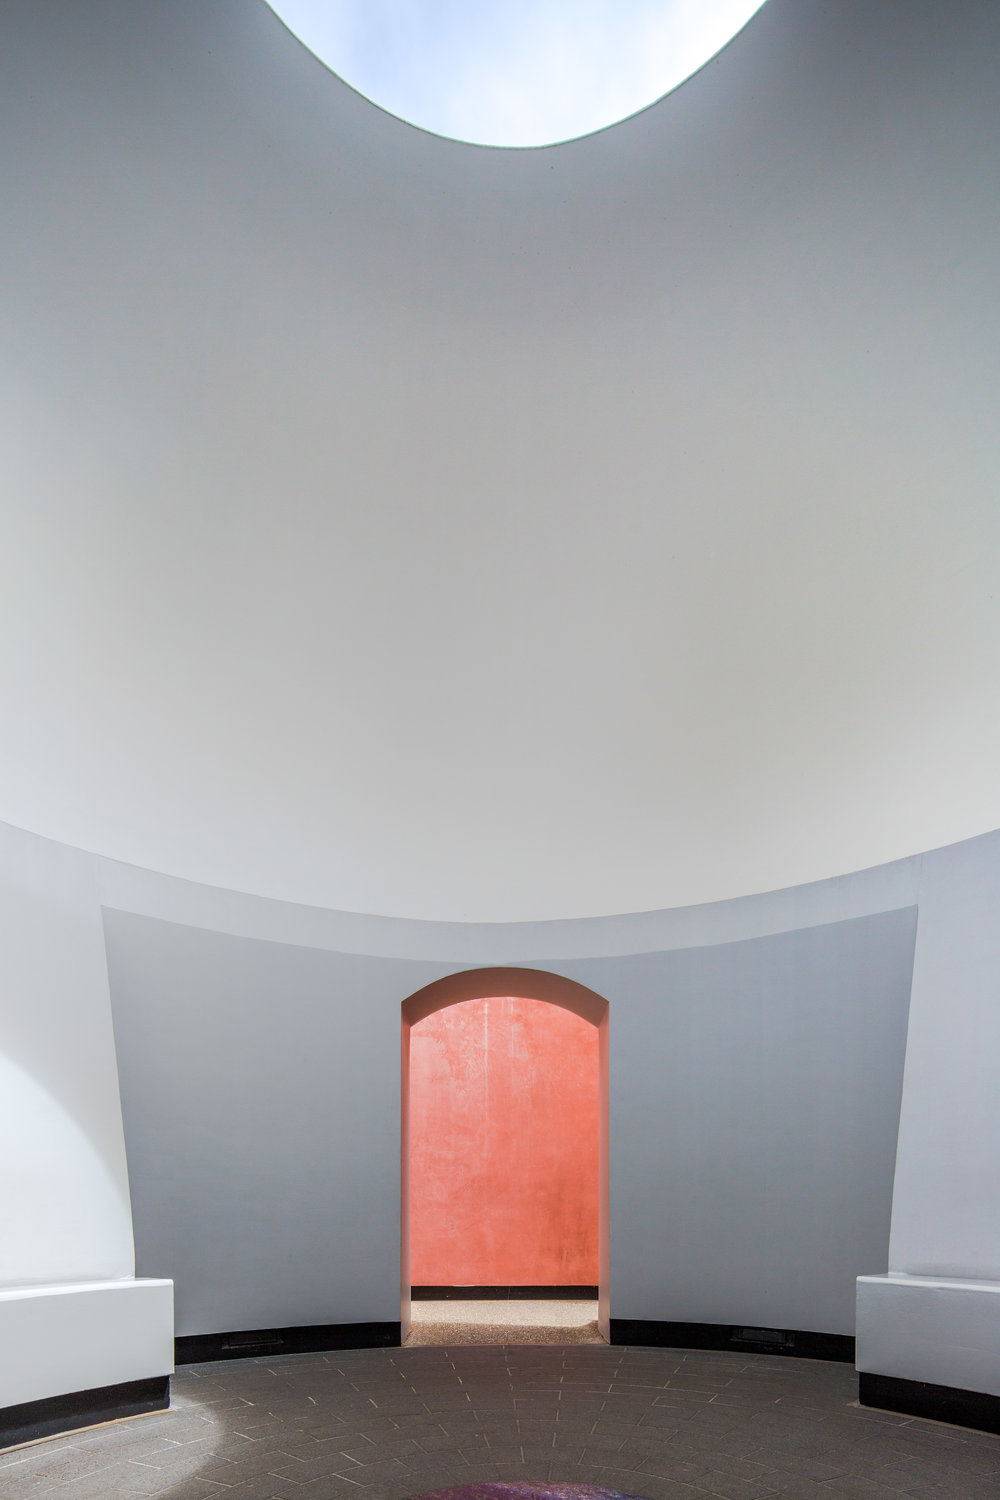 TURRELL SKYSPACE - DEYOUNG MUSEUM